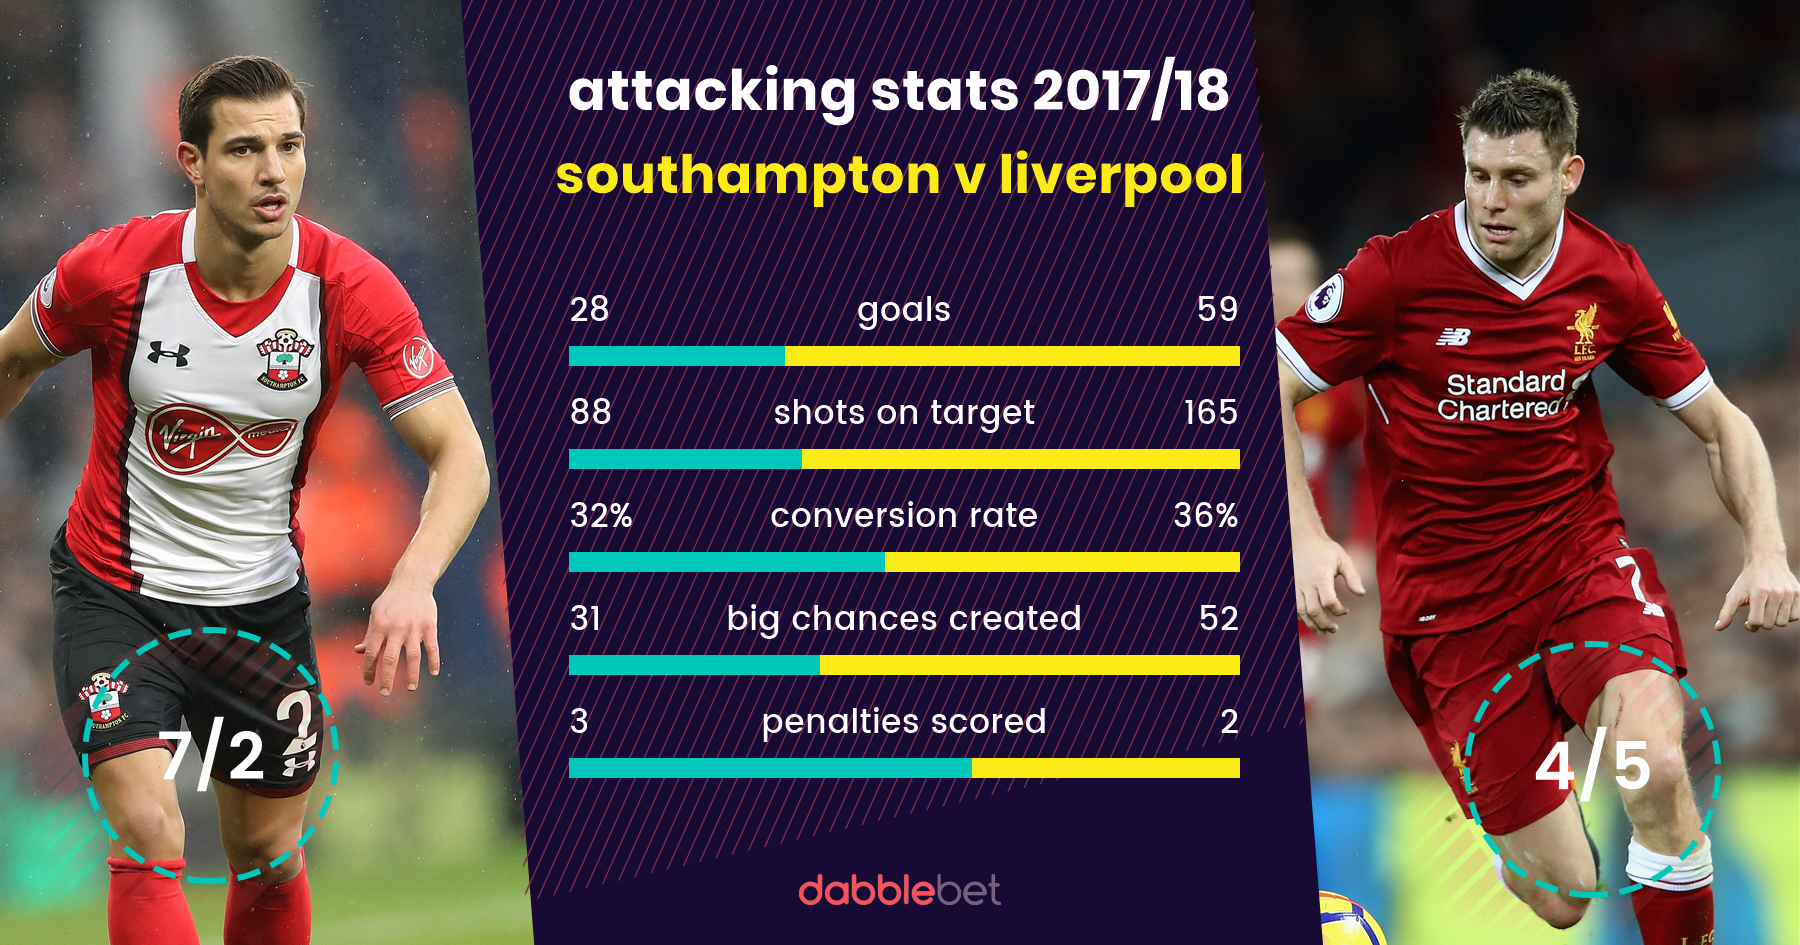 Southampton Liverpool graphic